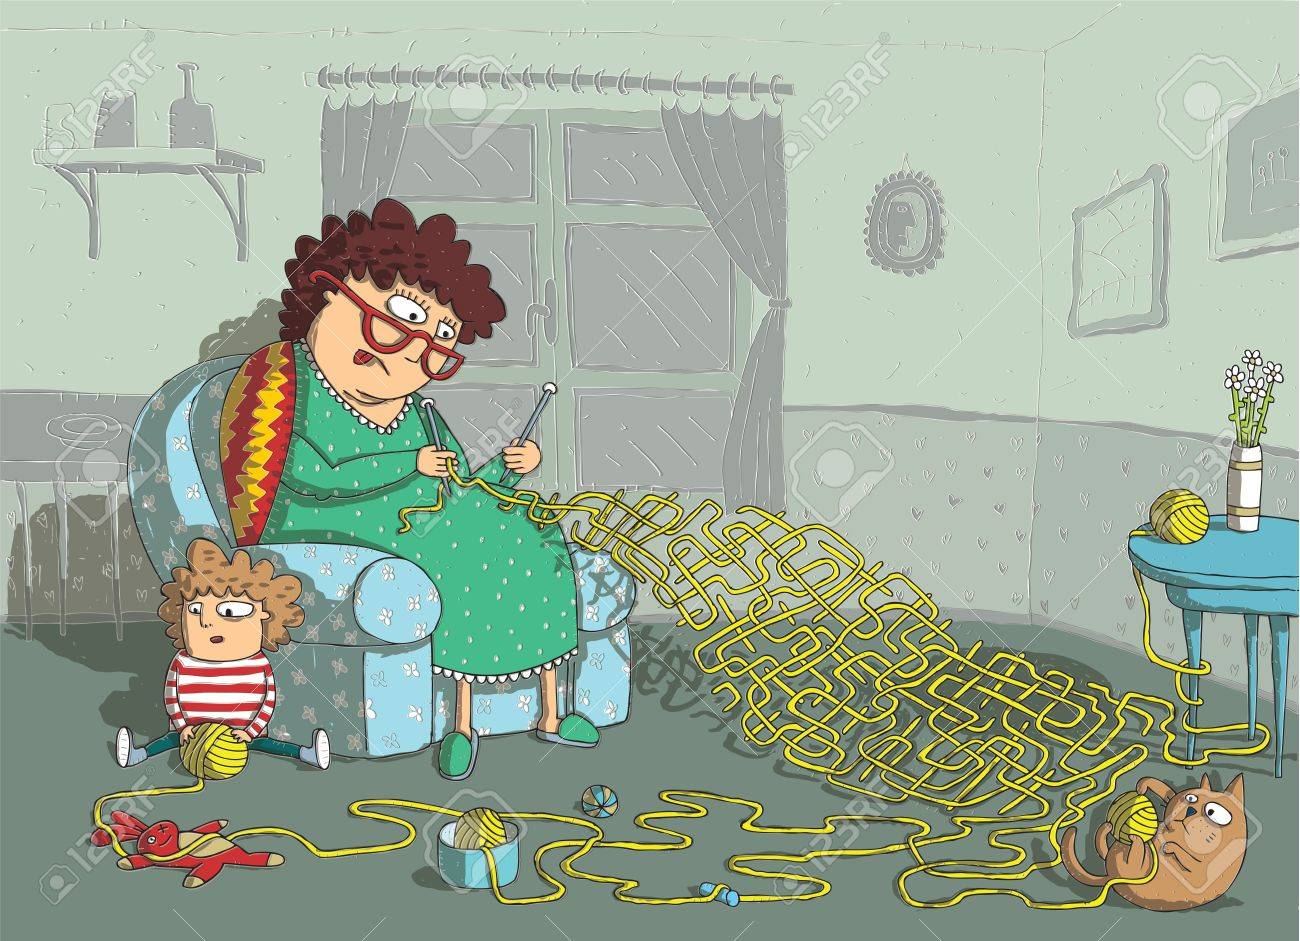 Grandma Crochet Maze Game  hand drawing with background on separate layer  Task  which wool-ball leads to grandma  Solution  cat Stock Vector - 17944356